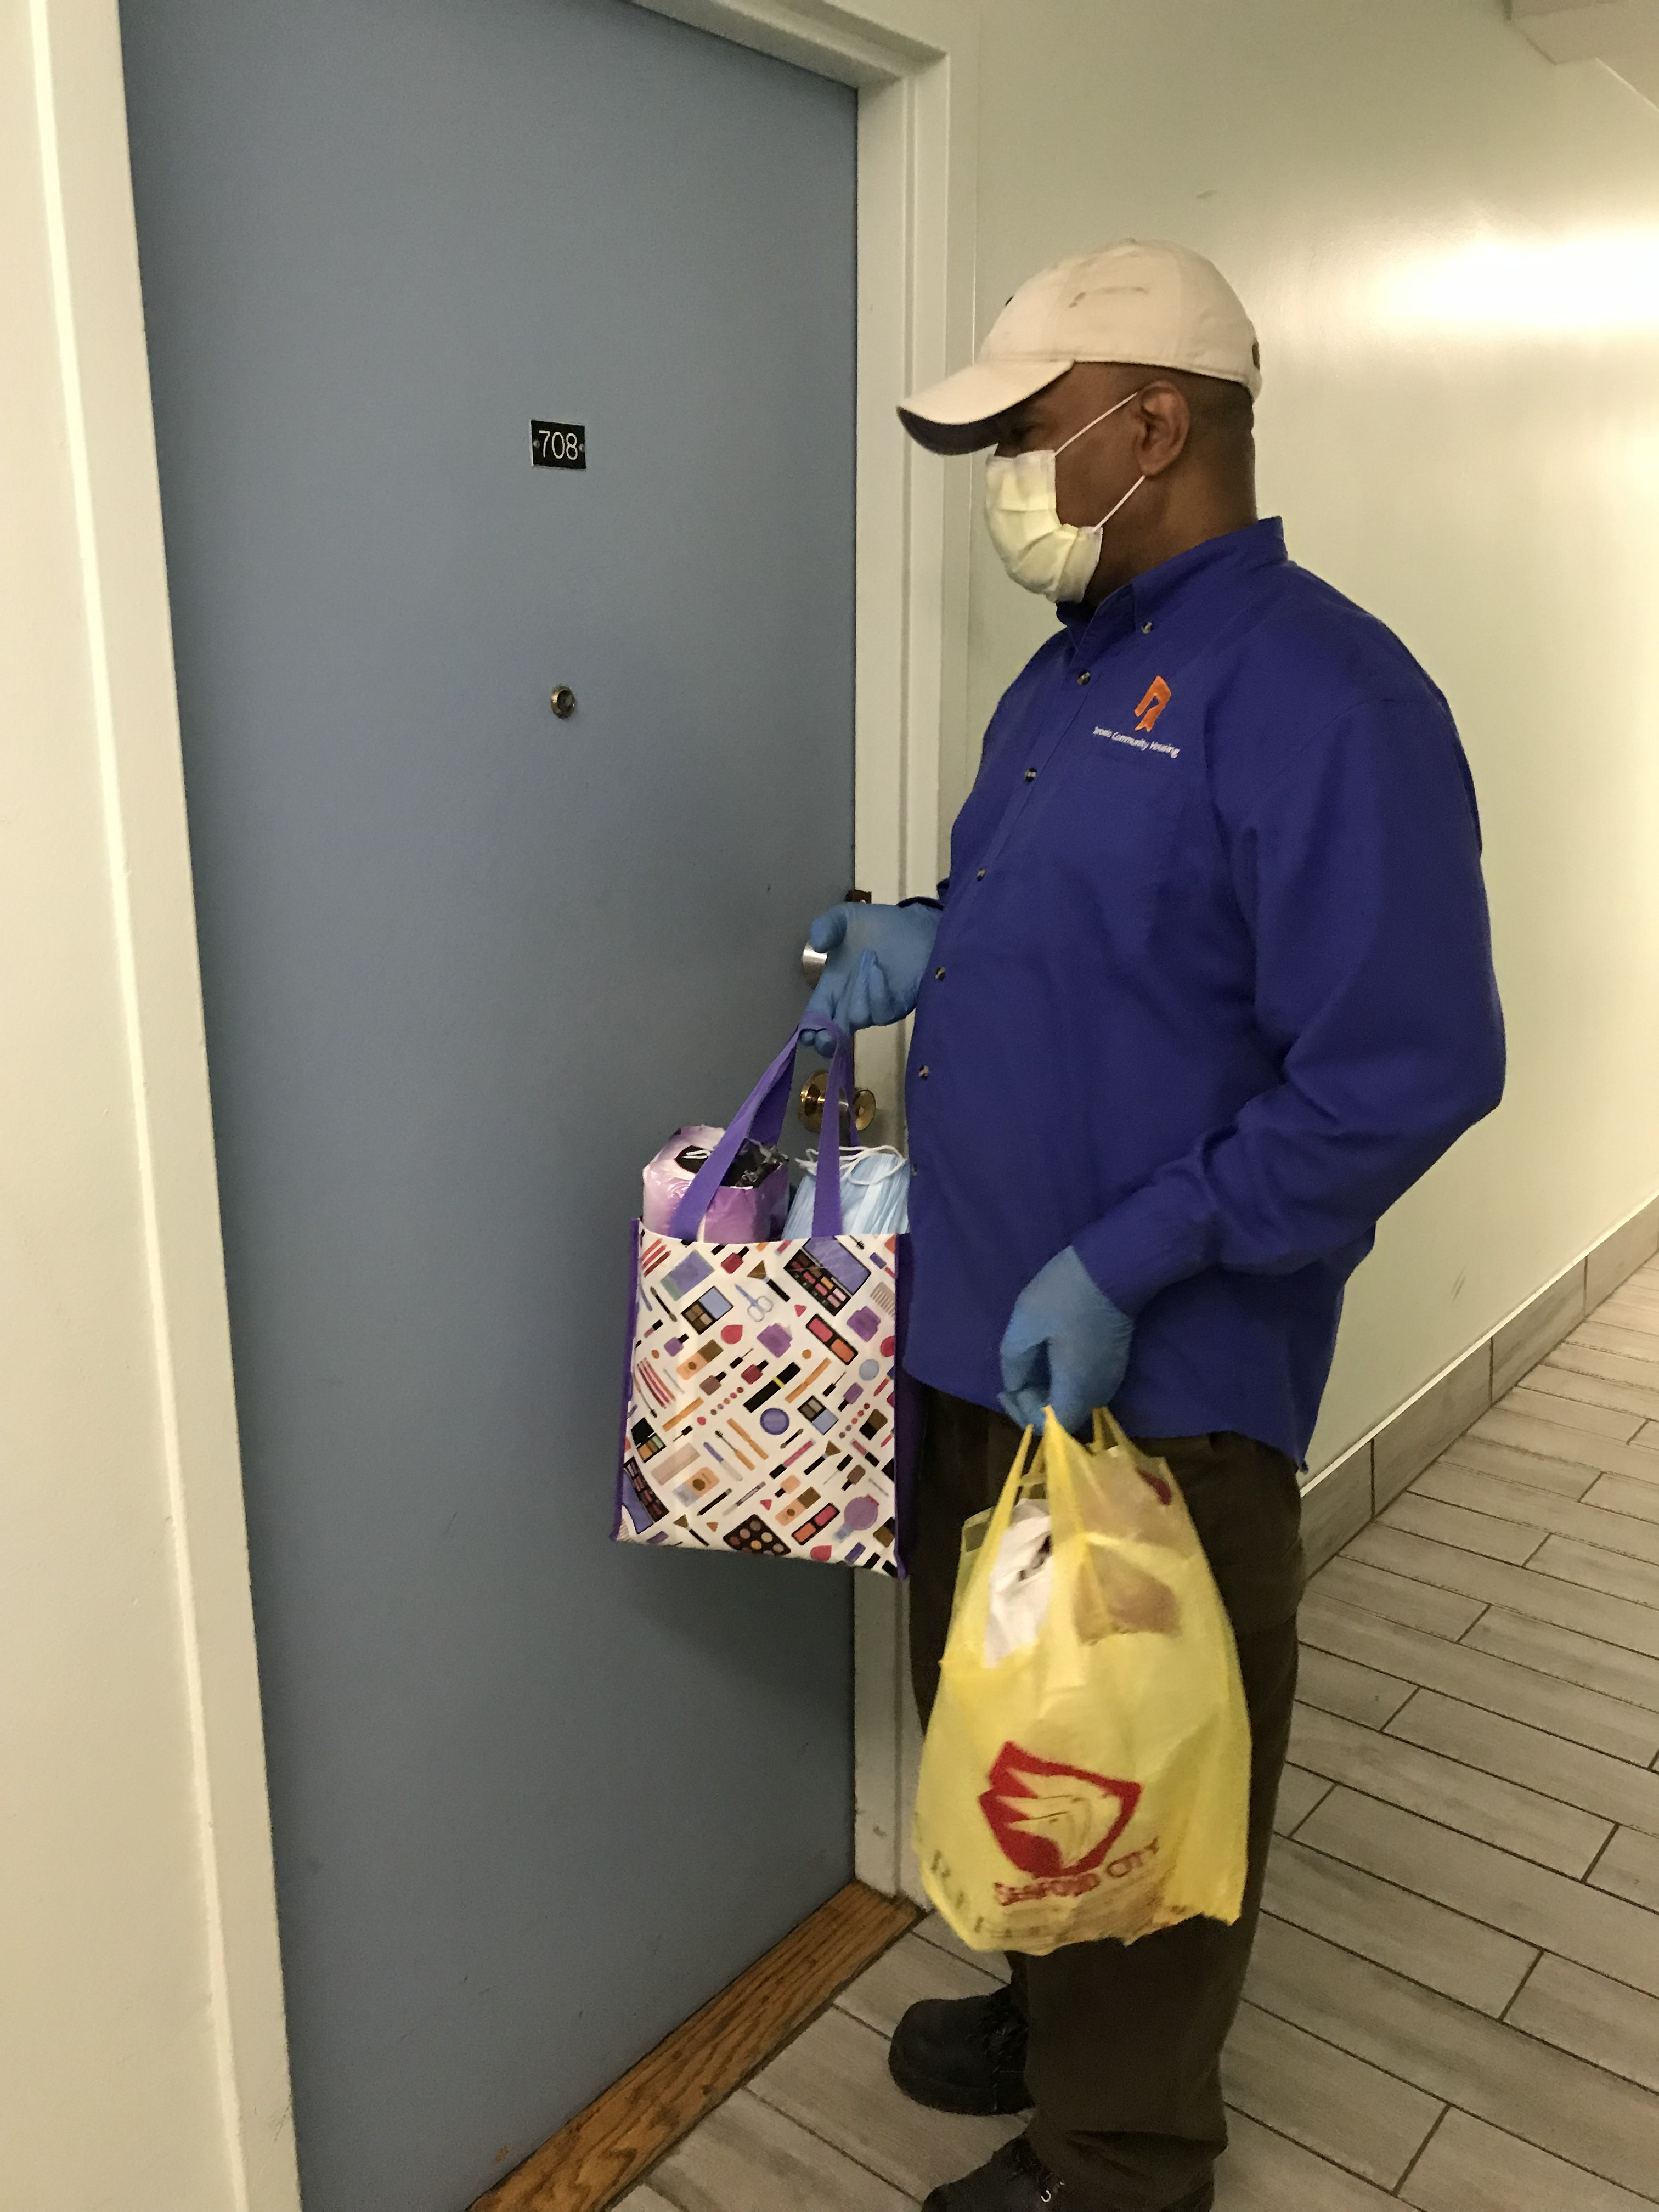 A TCHC male staff delivering bags of toiletries to a tenant.